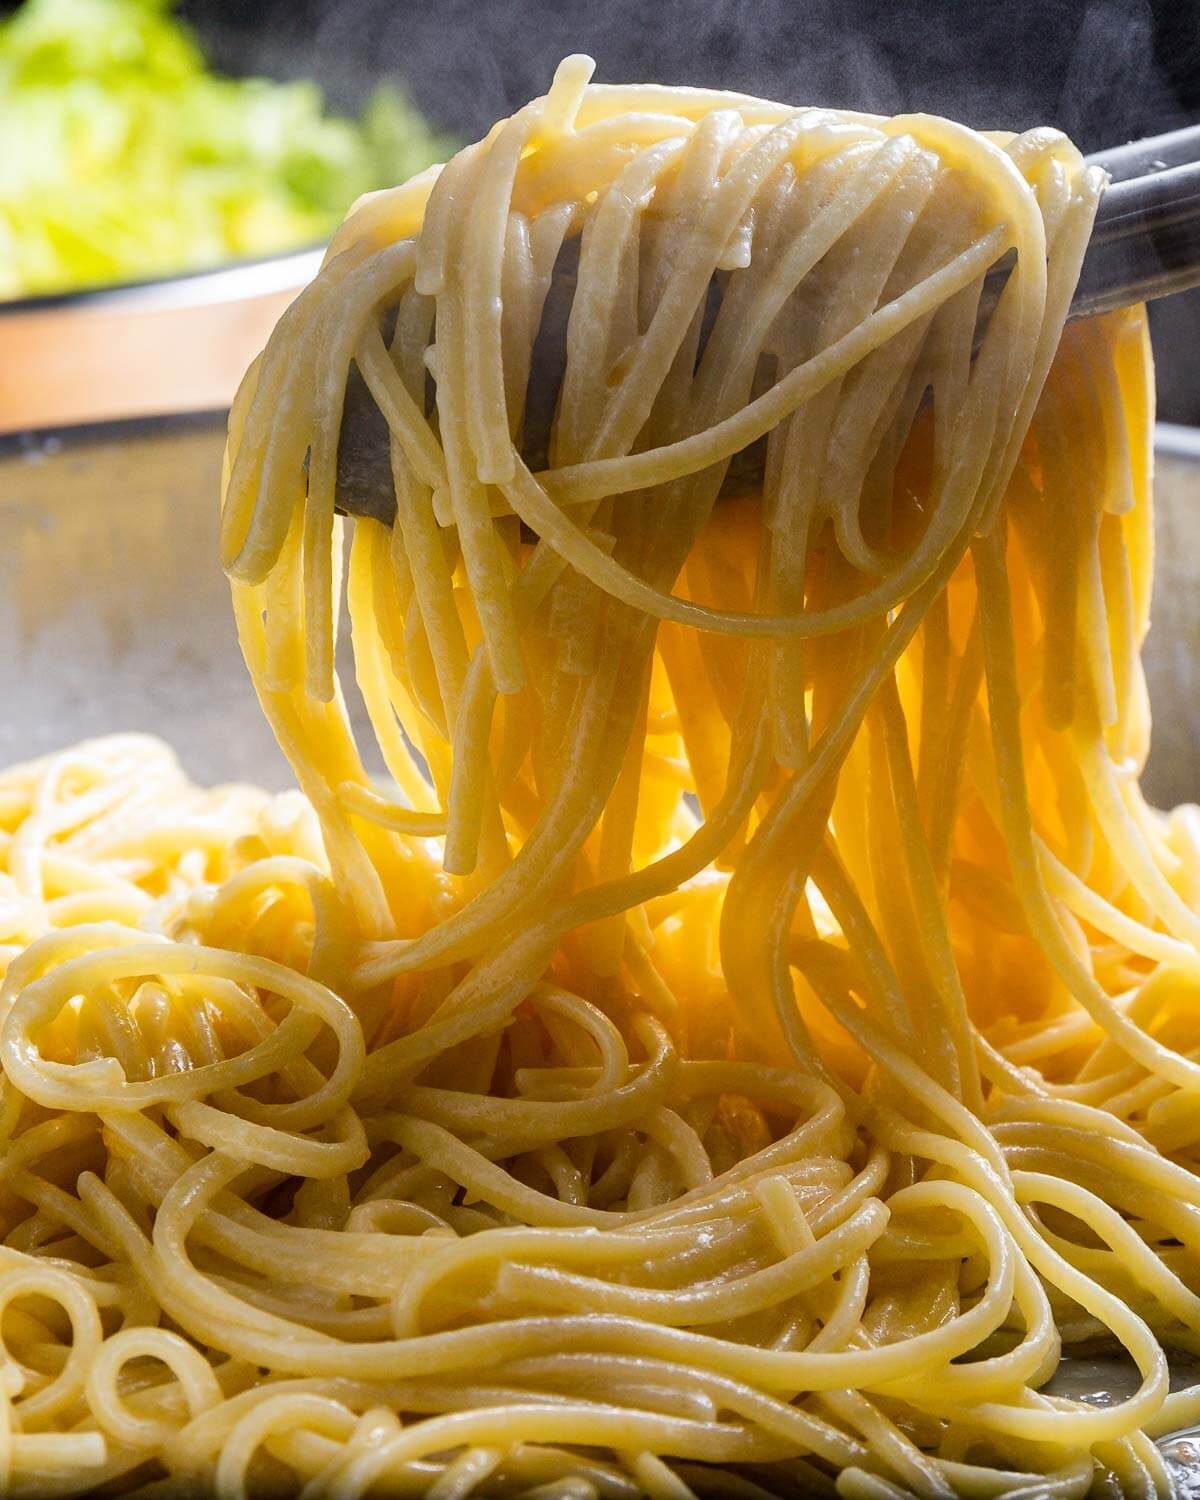 Tongs holding linguine with cheese.